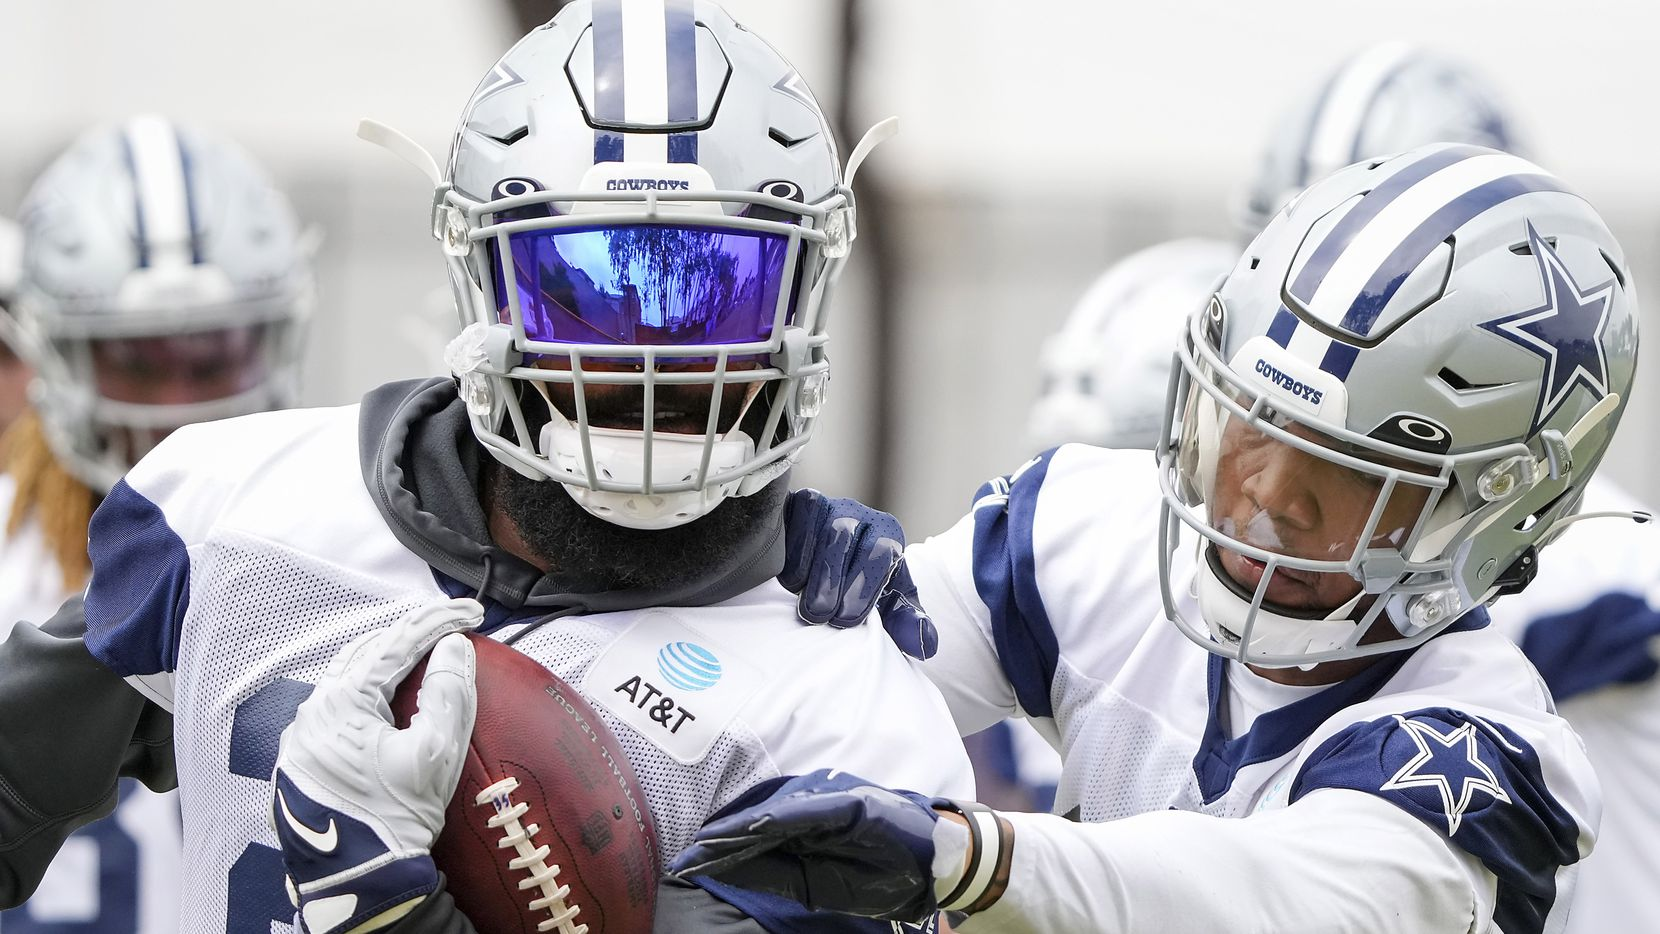 Dallas Cowboys running back Ezekiel Elliott (21) works against  running back Tony Pollard (20) in a fumble drill during a practice at training camp on Tuesday, July 27, 2021, in Oxnard, Calif.